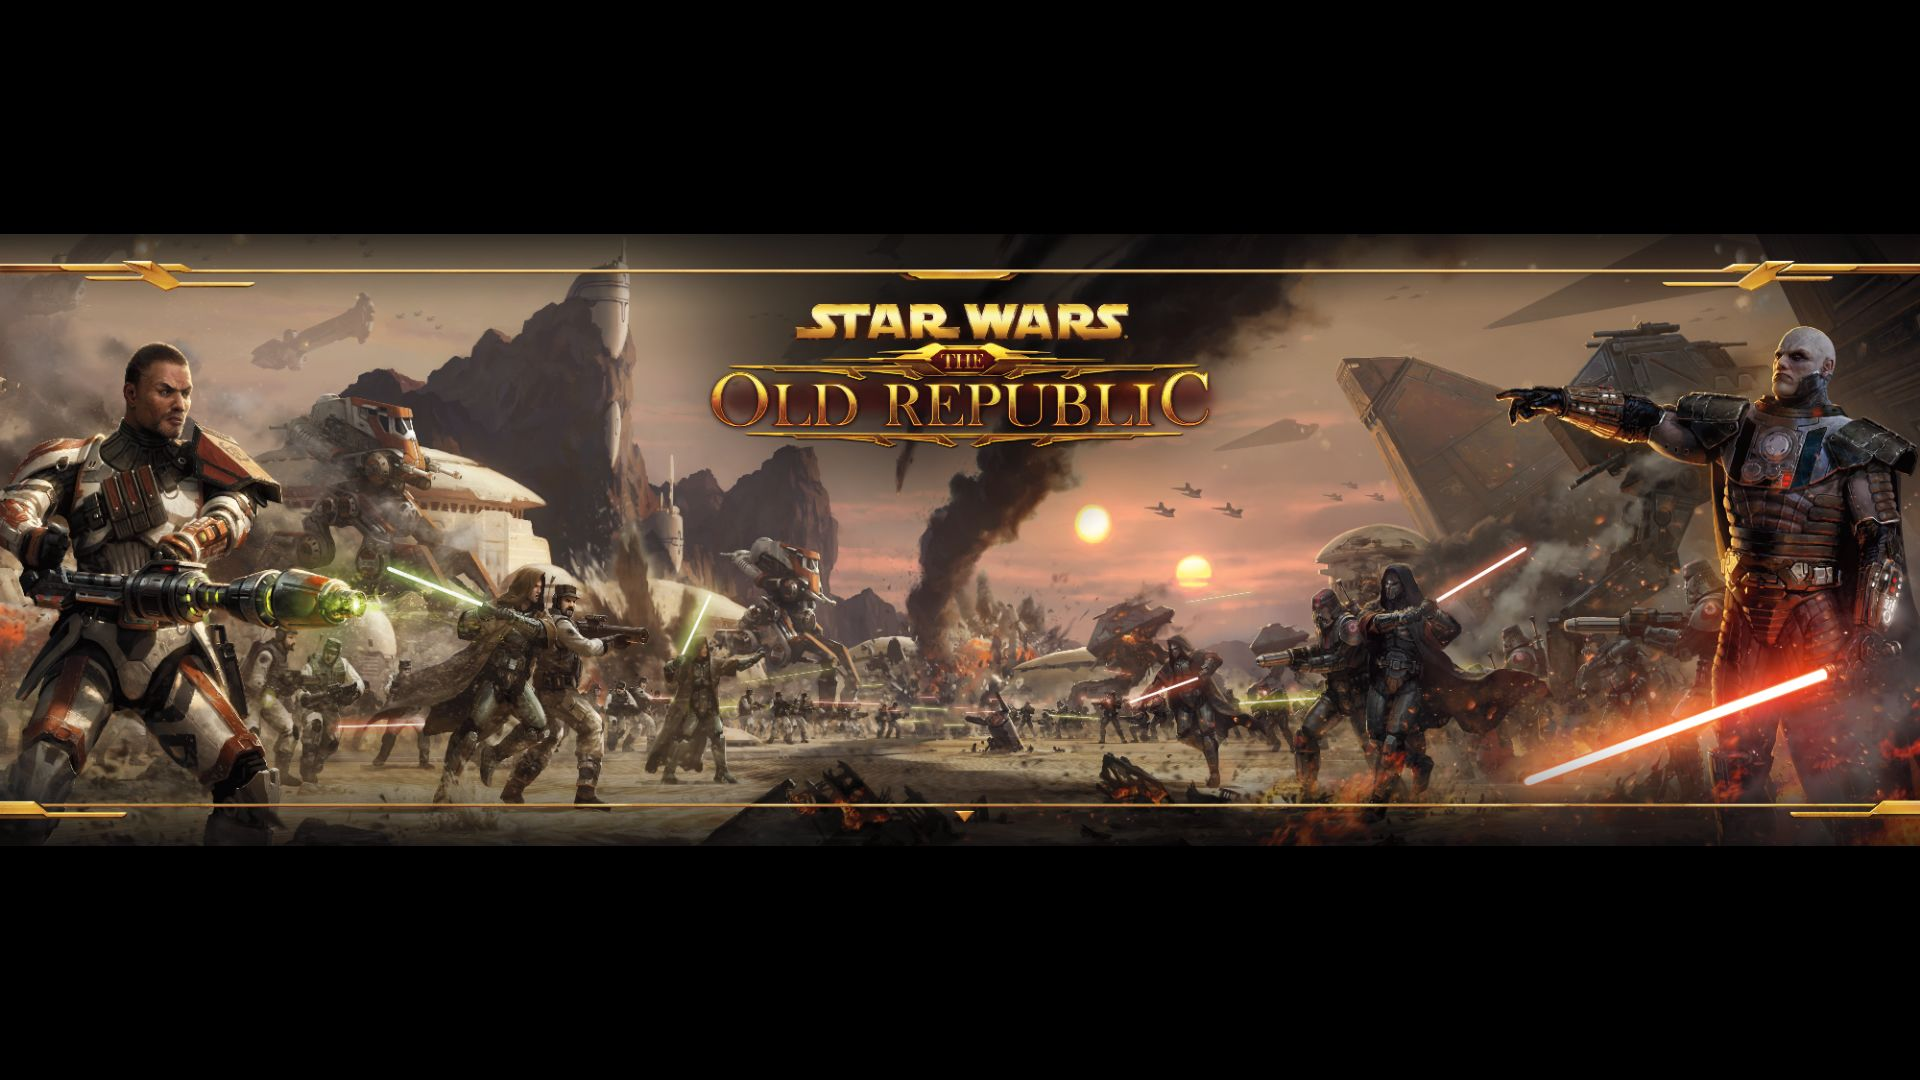 Star Wars The Old Republic Wallpaper Dark And Light Side Battle Gaming Phanatic